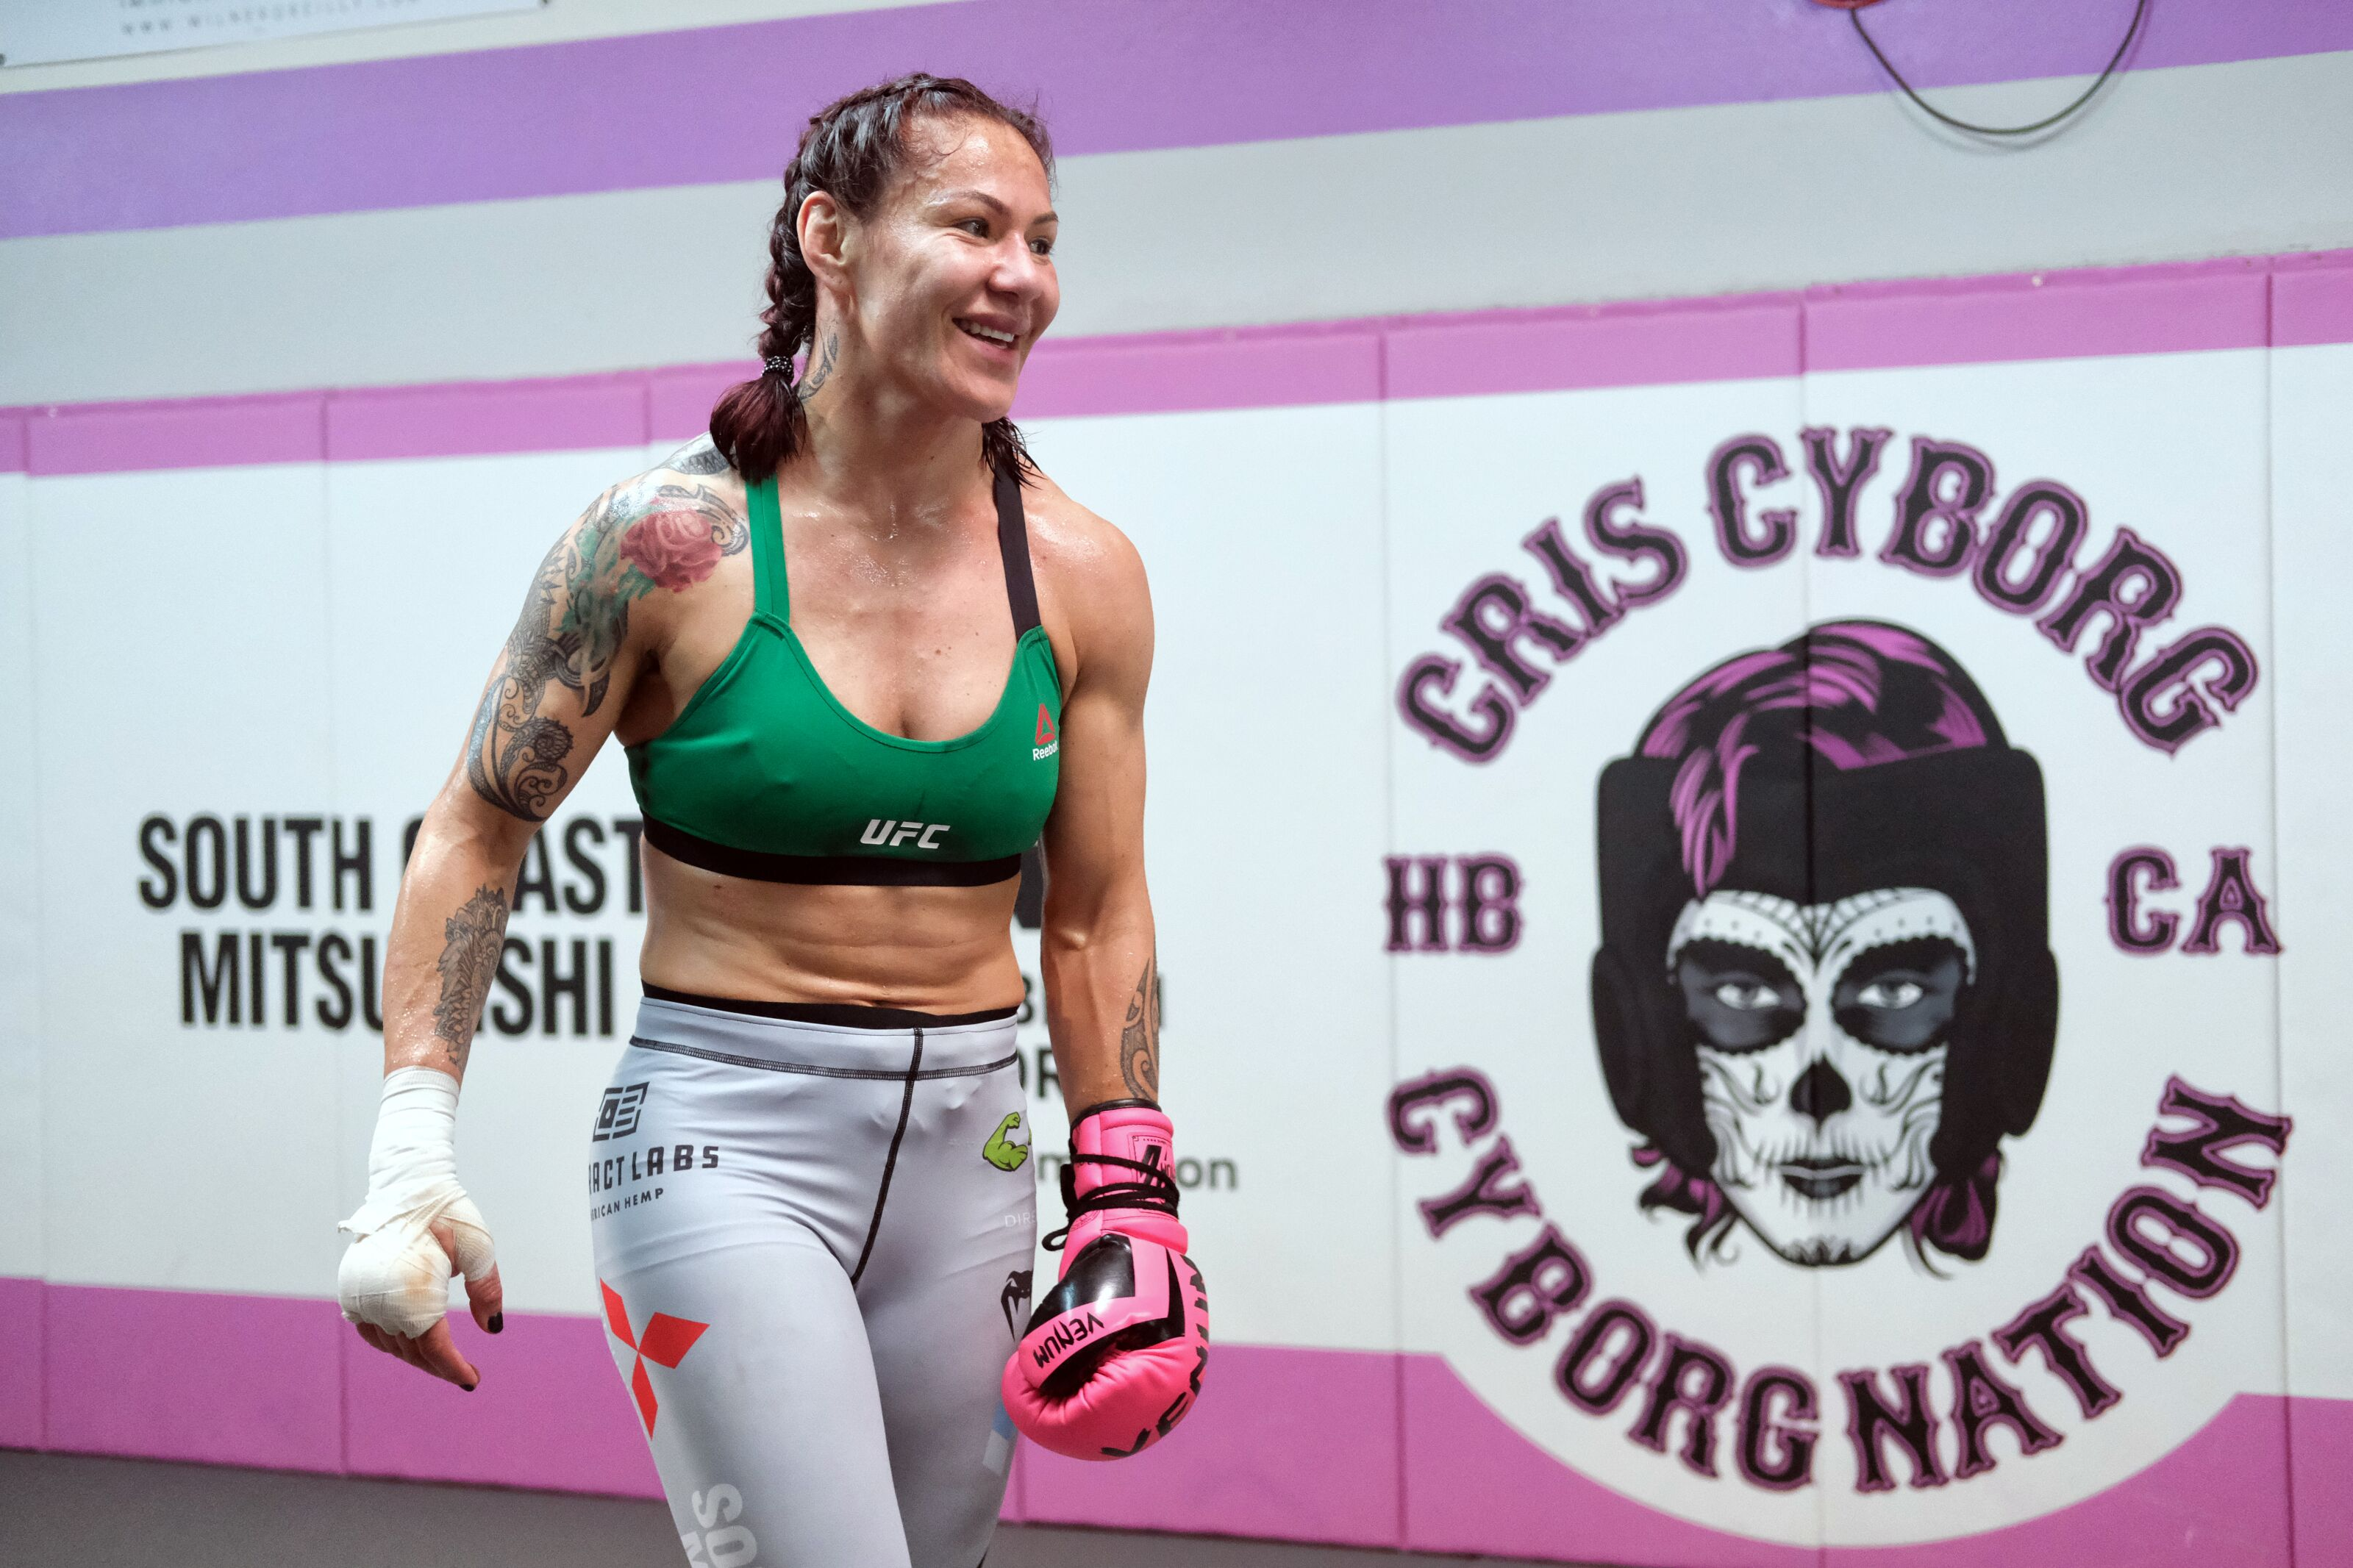 HUNTINGTON BEACH, CA - DECEMBER 12: UFC women's featherweight champion Cris Cyborg at her gym in Huntington Beach, Wednesday, Dec 12, 2018. (Photo by Hans Gutknecht/Digital First Media/Los Angeles Daily News via Getty Images)